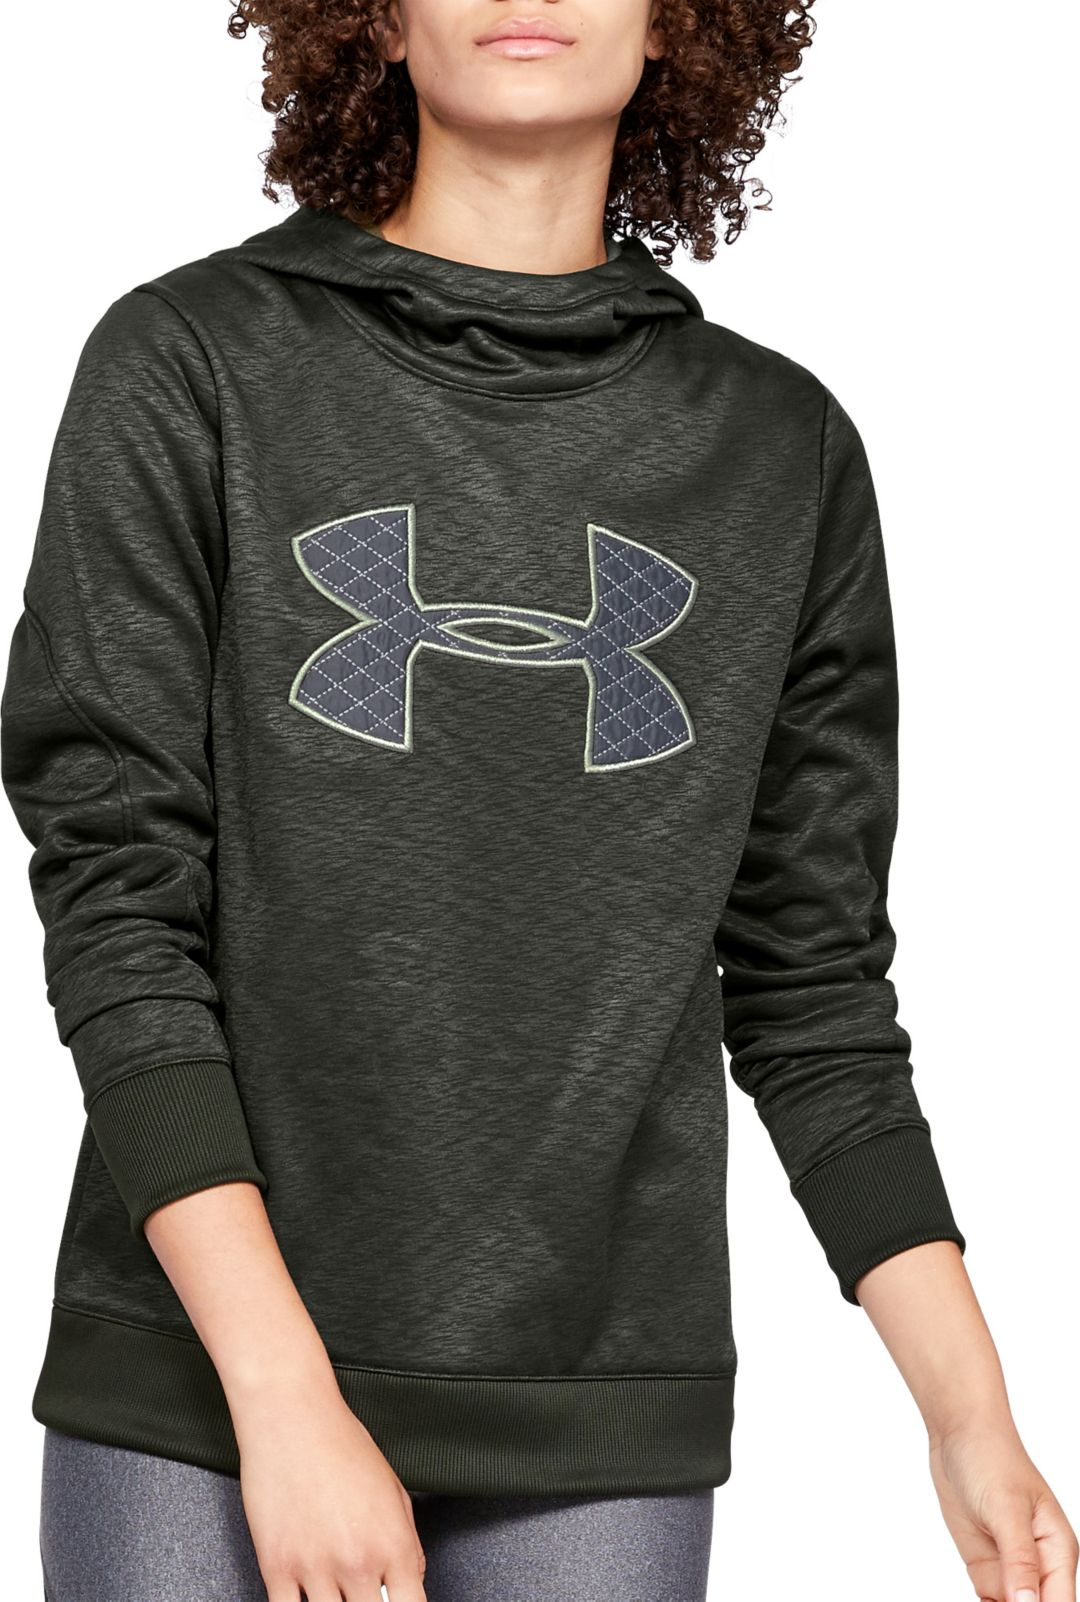 ef9df6140e Under Armour Women's Armour Fleece Big Logo Hoodie